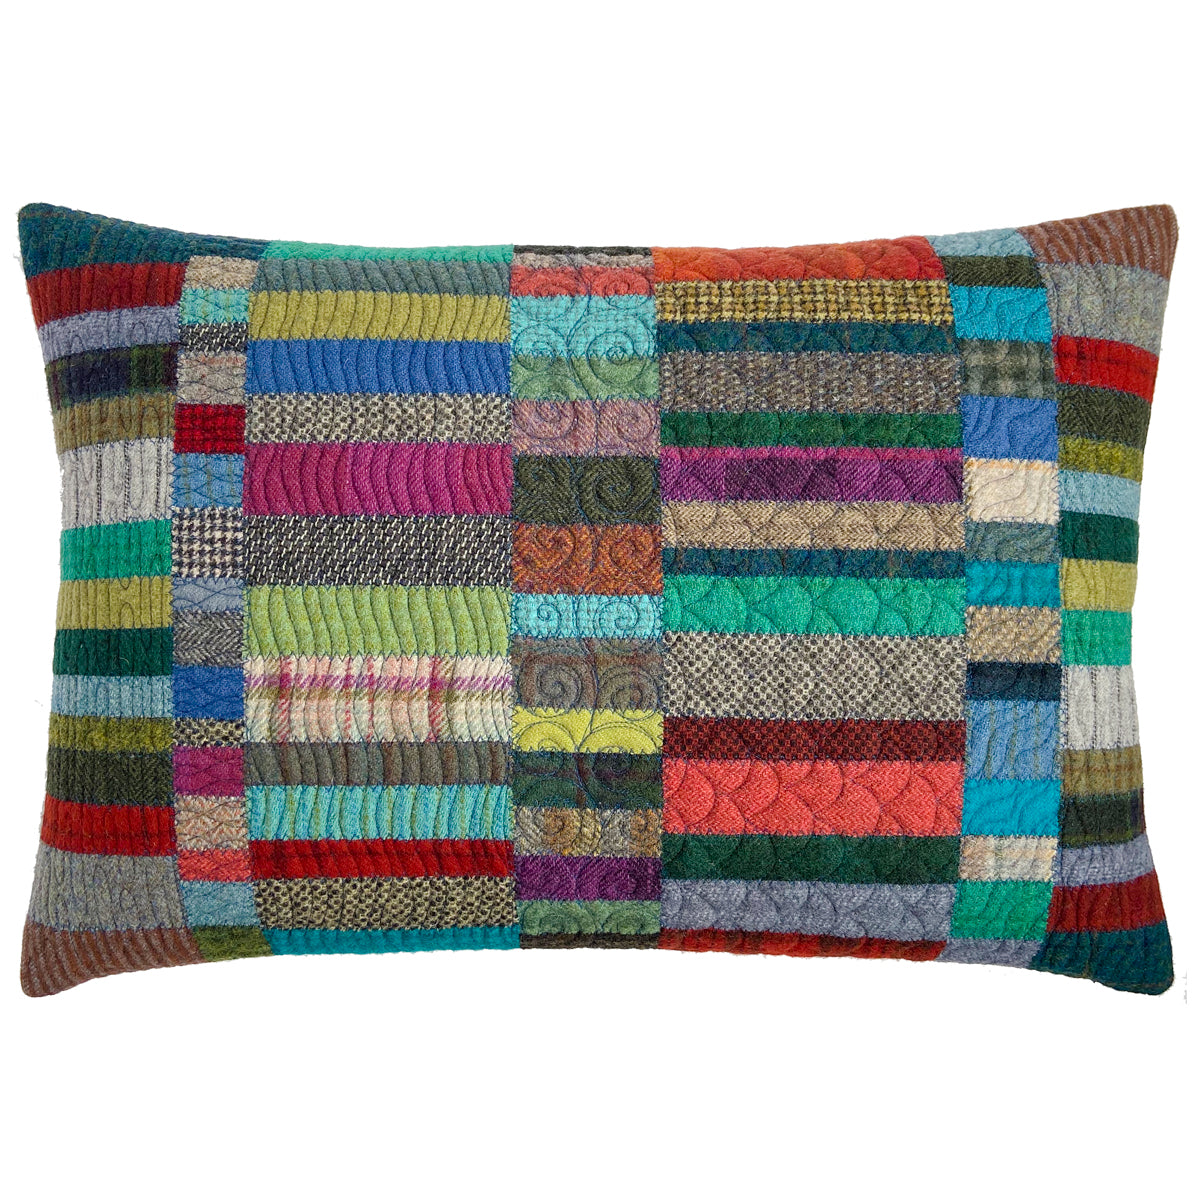 George Street Cushion • 15x22 A